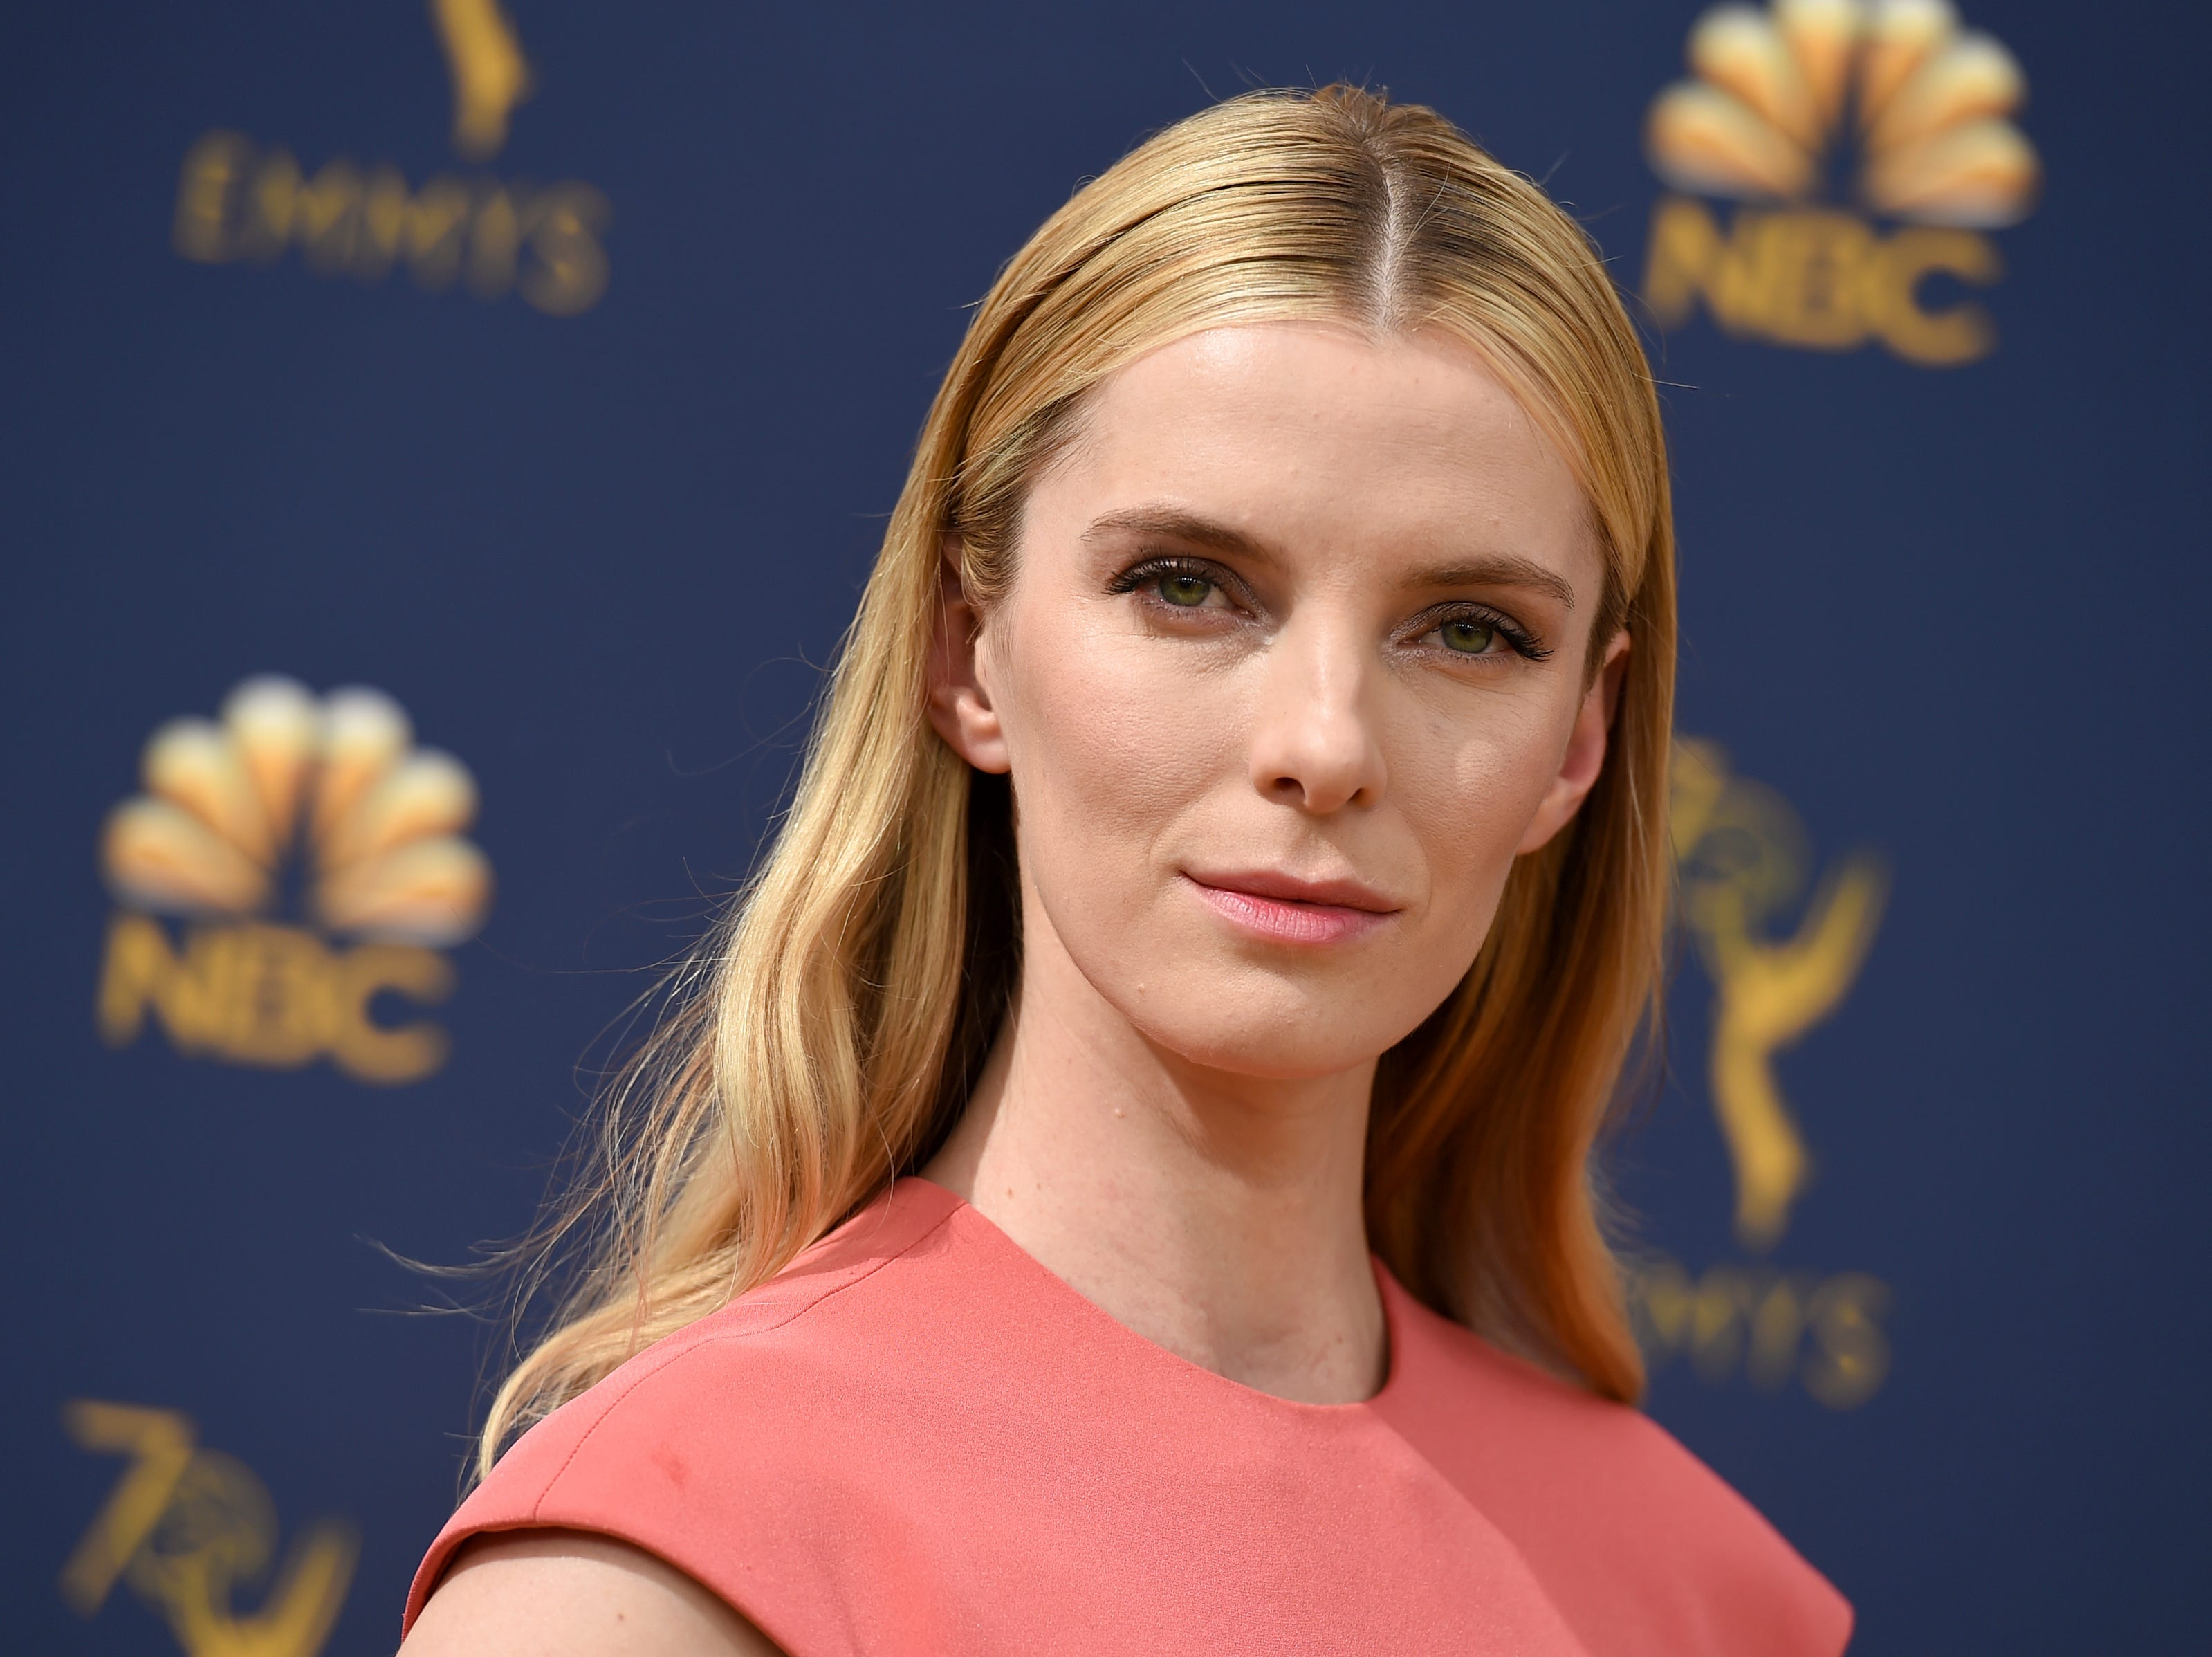 Betty Gilpin arrives at the 70th Primetime Emmy Awards on Monday, Sept. 17, 2018, at the Microsoft Theater in Los Angeles.